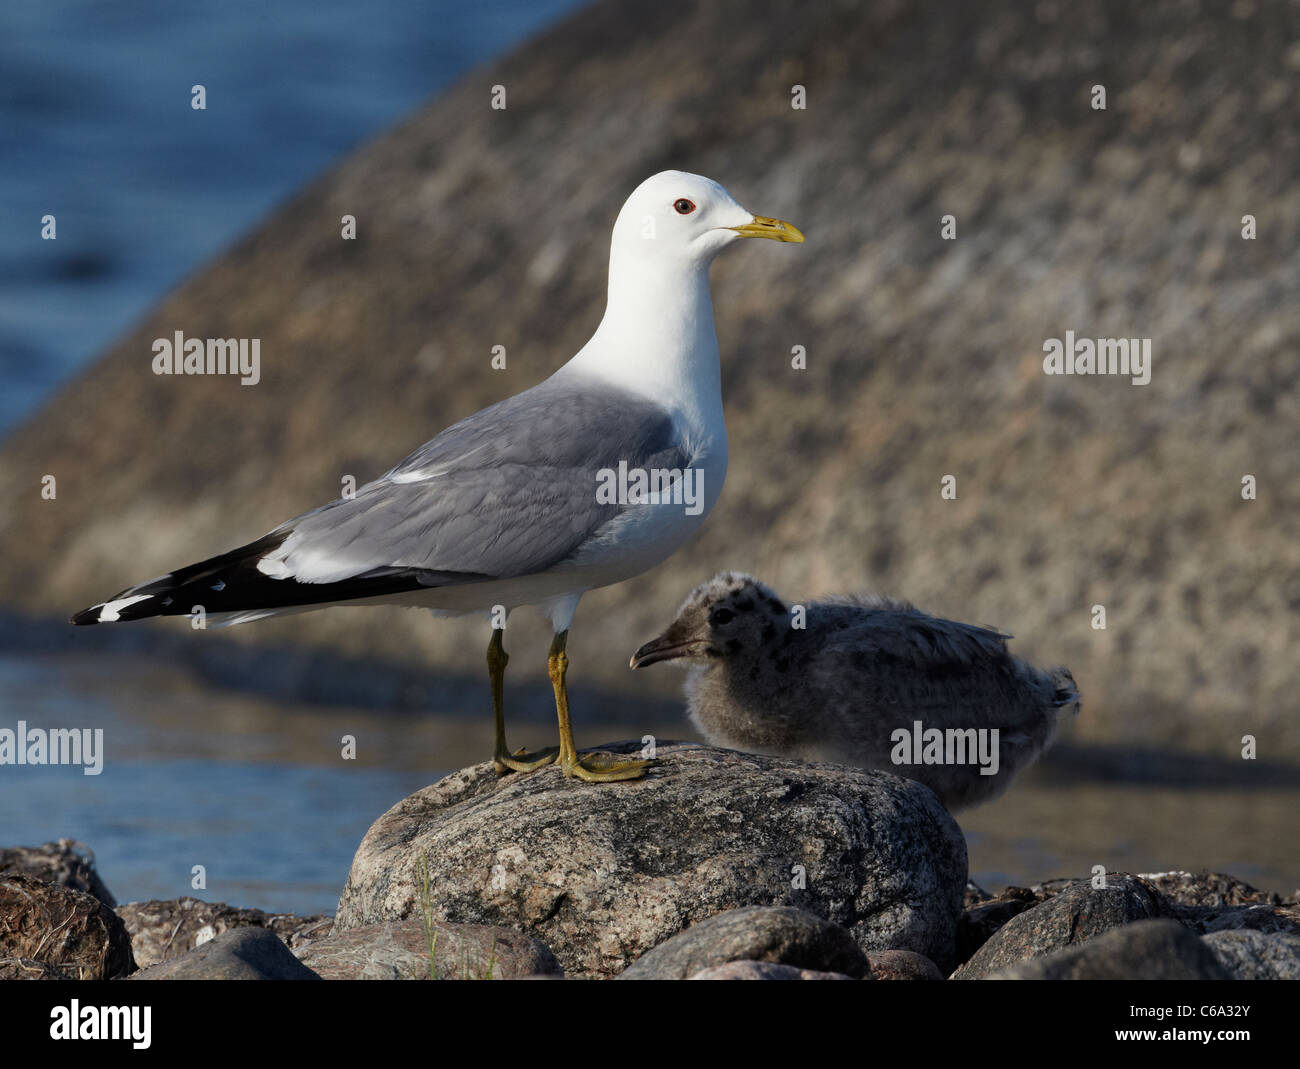 Common Gull (Larus canus). Adult with chick standing on a rock. - Stock Image